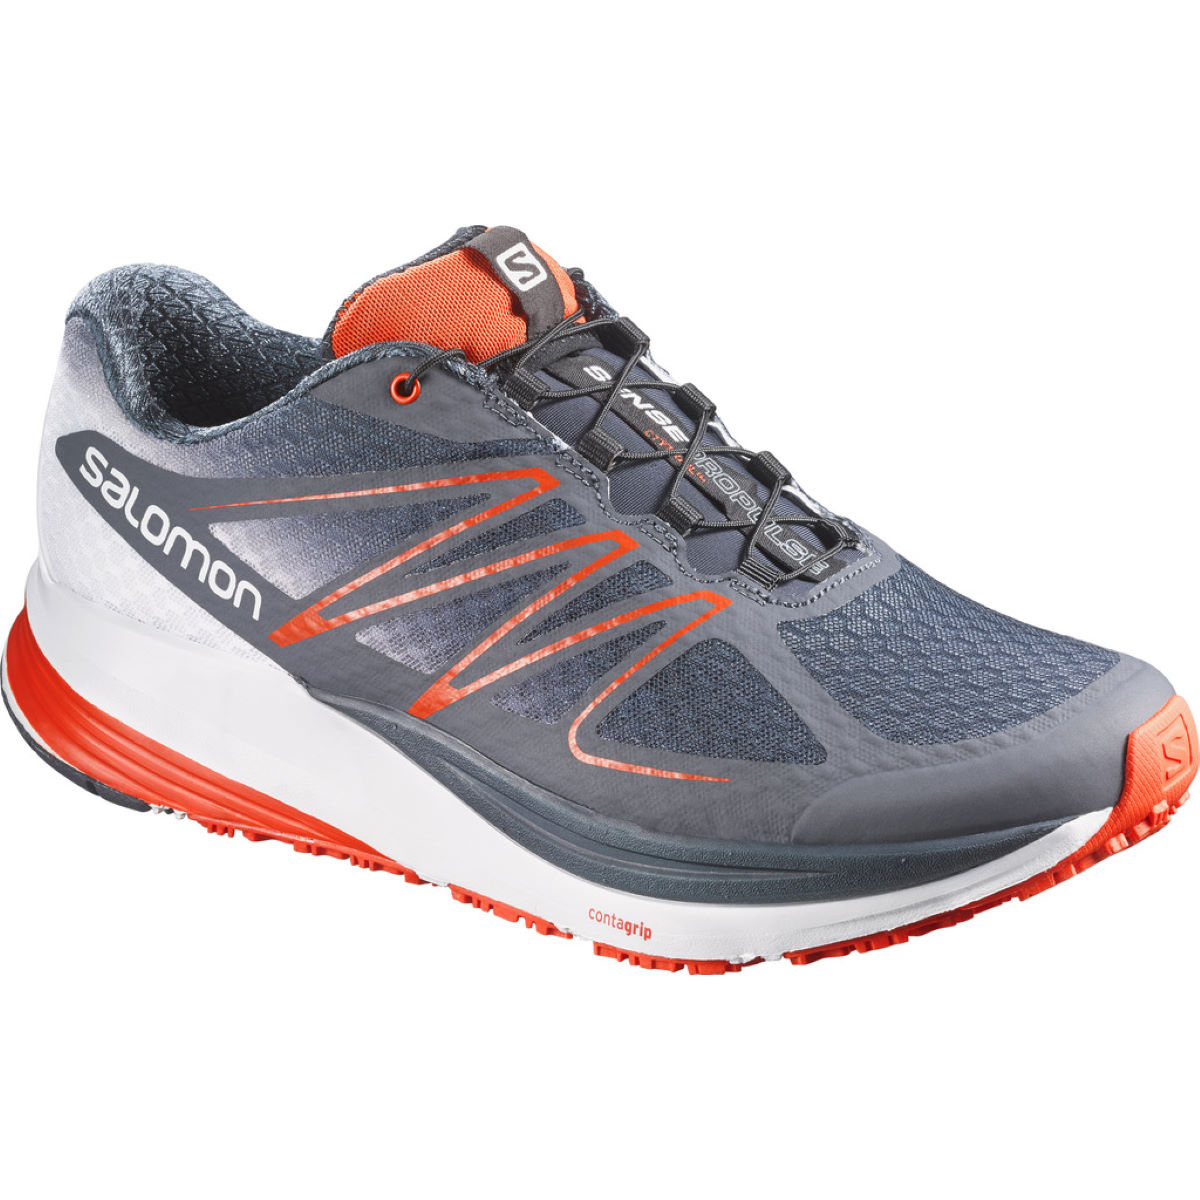 Salomon sense propulse offroad running shoes grey red clearance l37260700 3